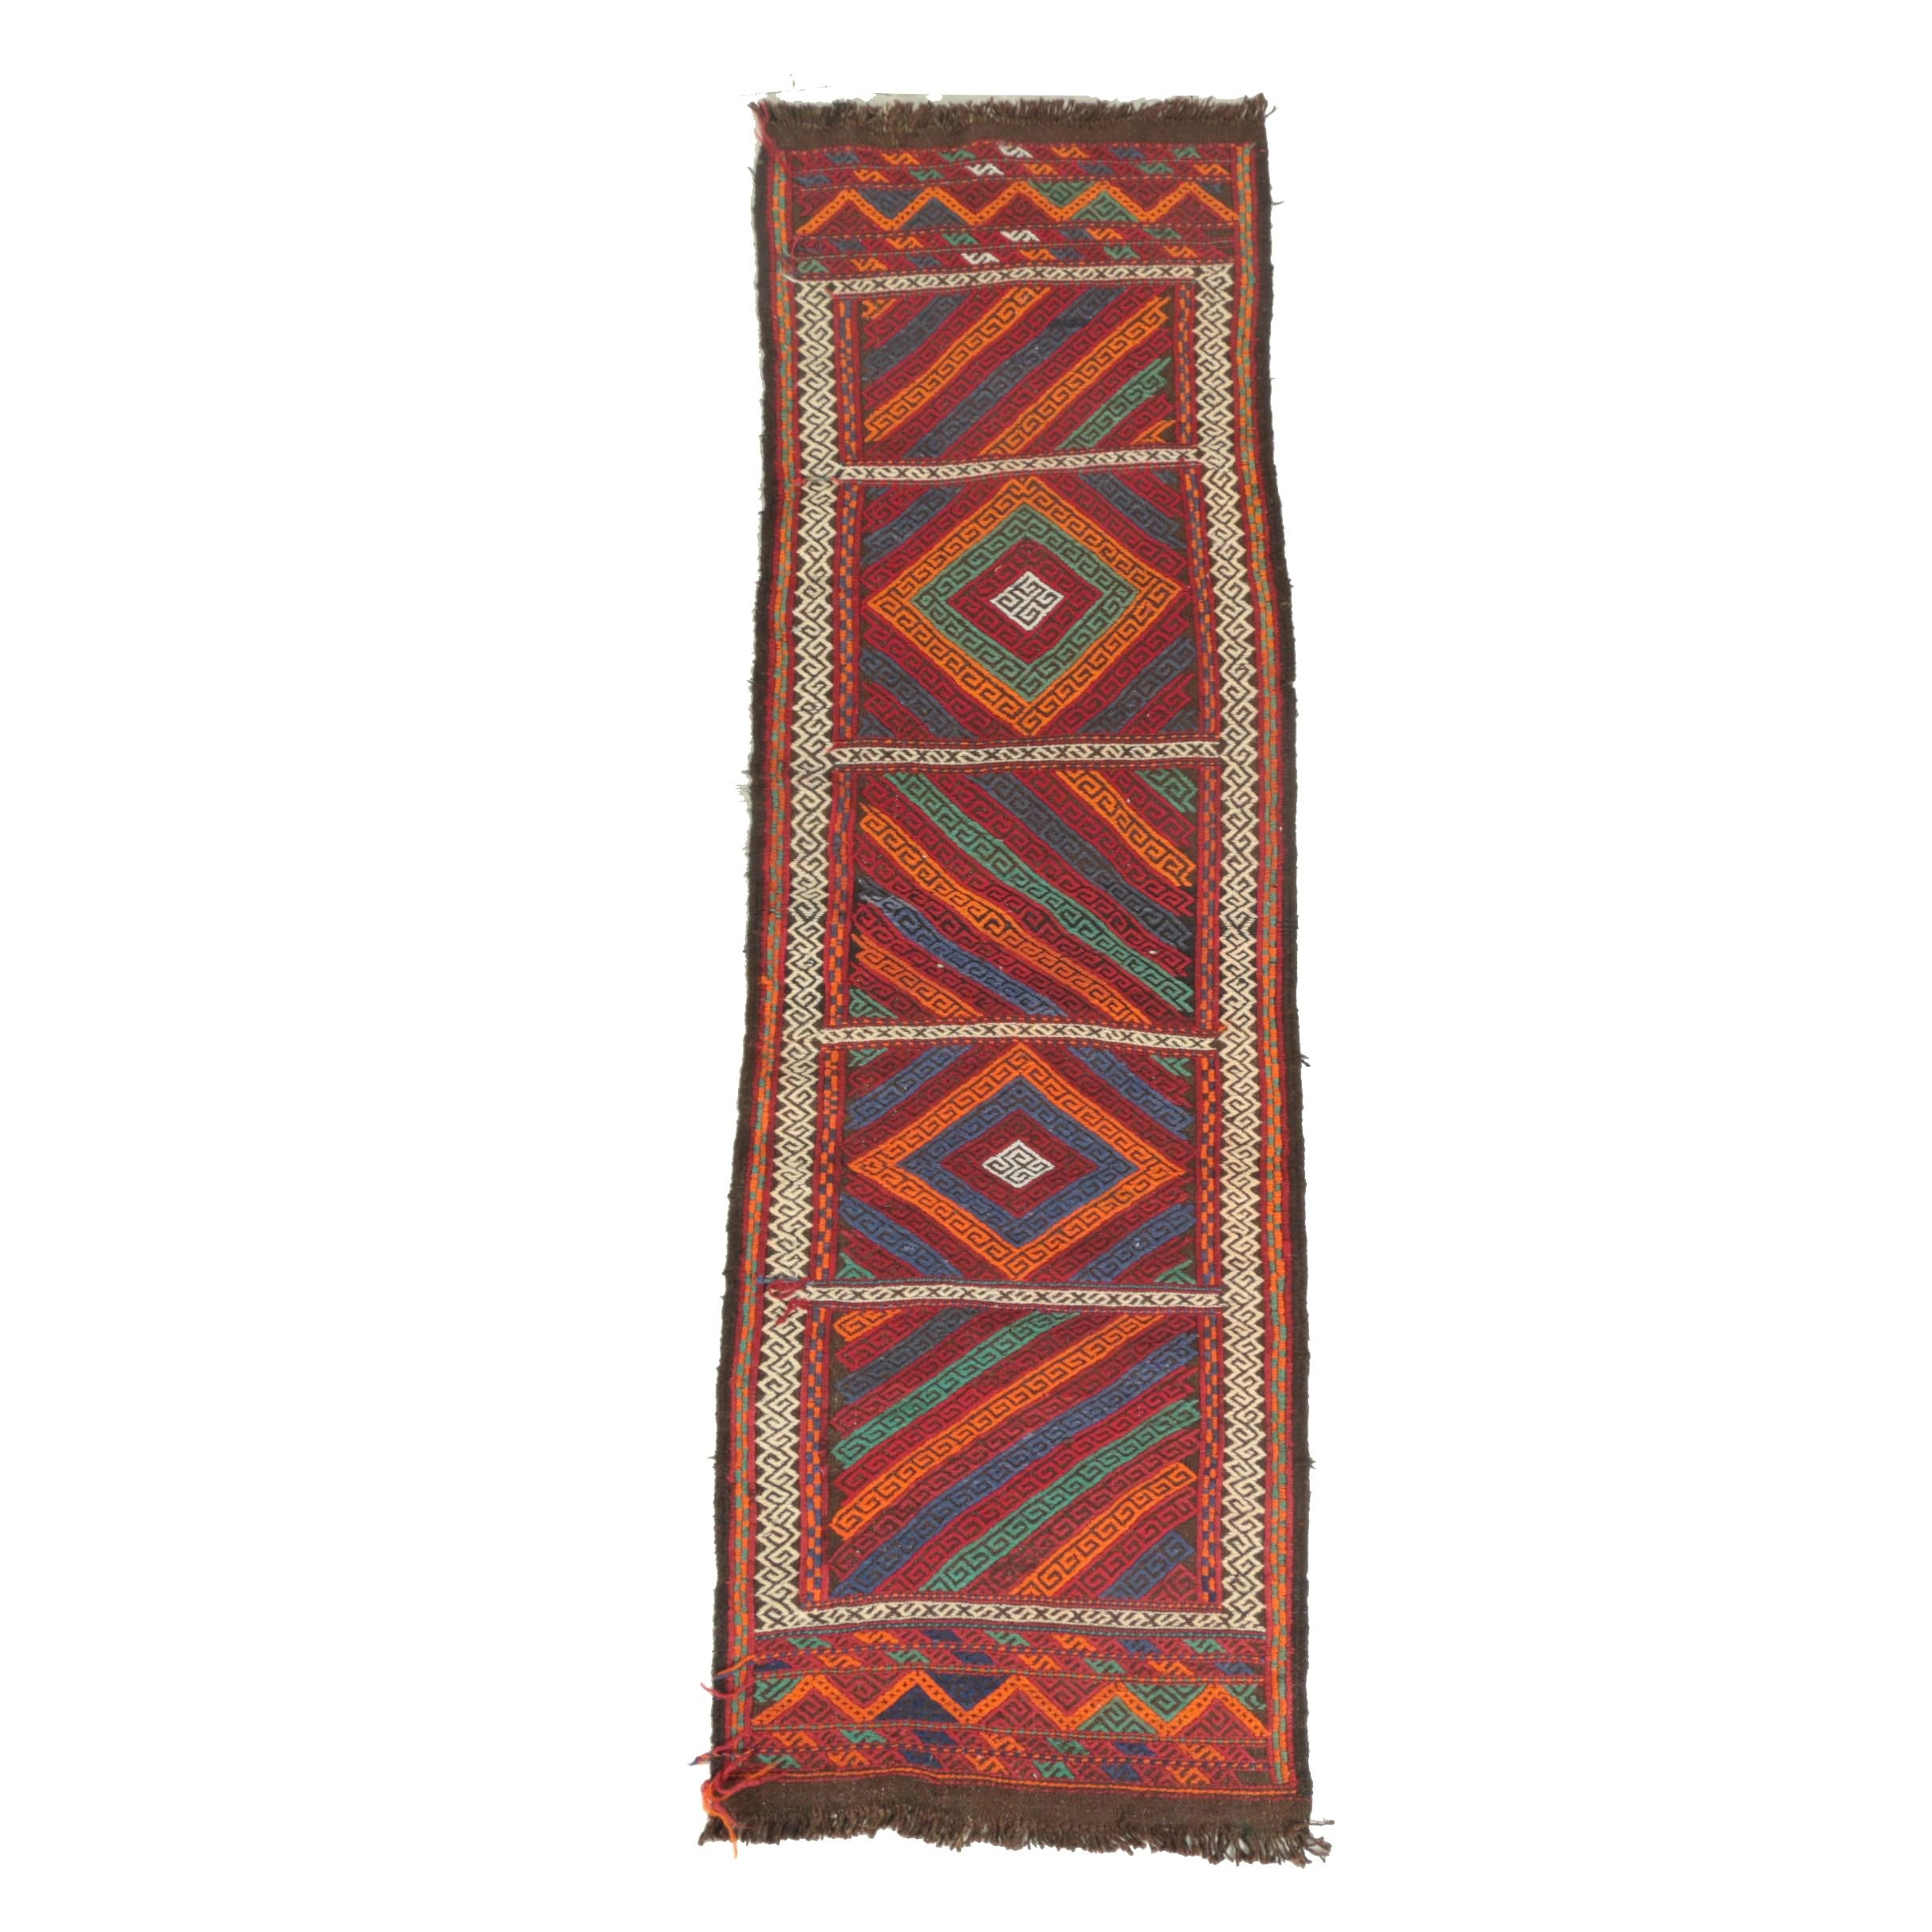 Handwoven and Embroidered Pakistani Suzni Style Wool Carpet Runner